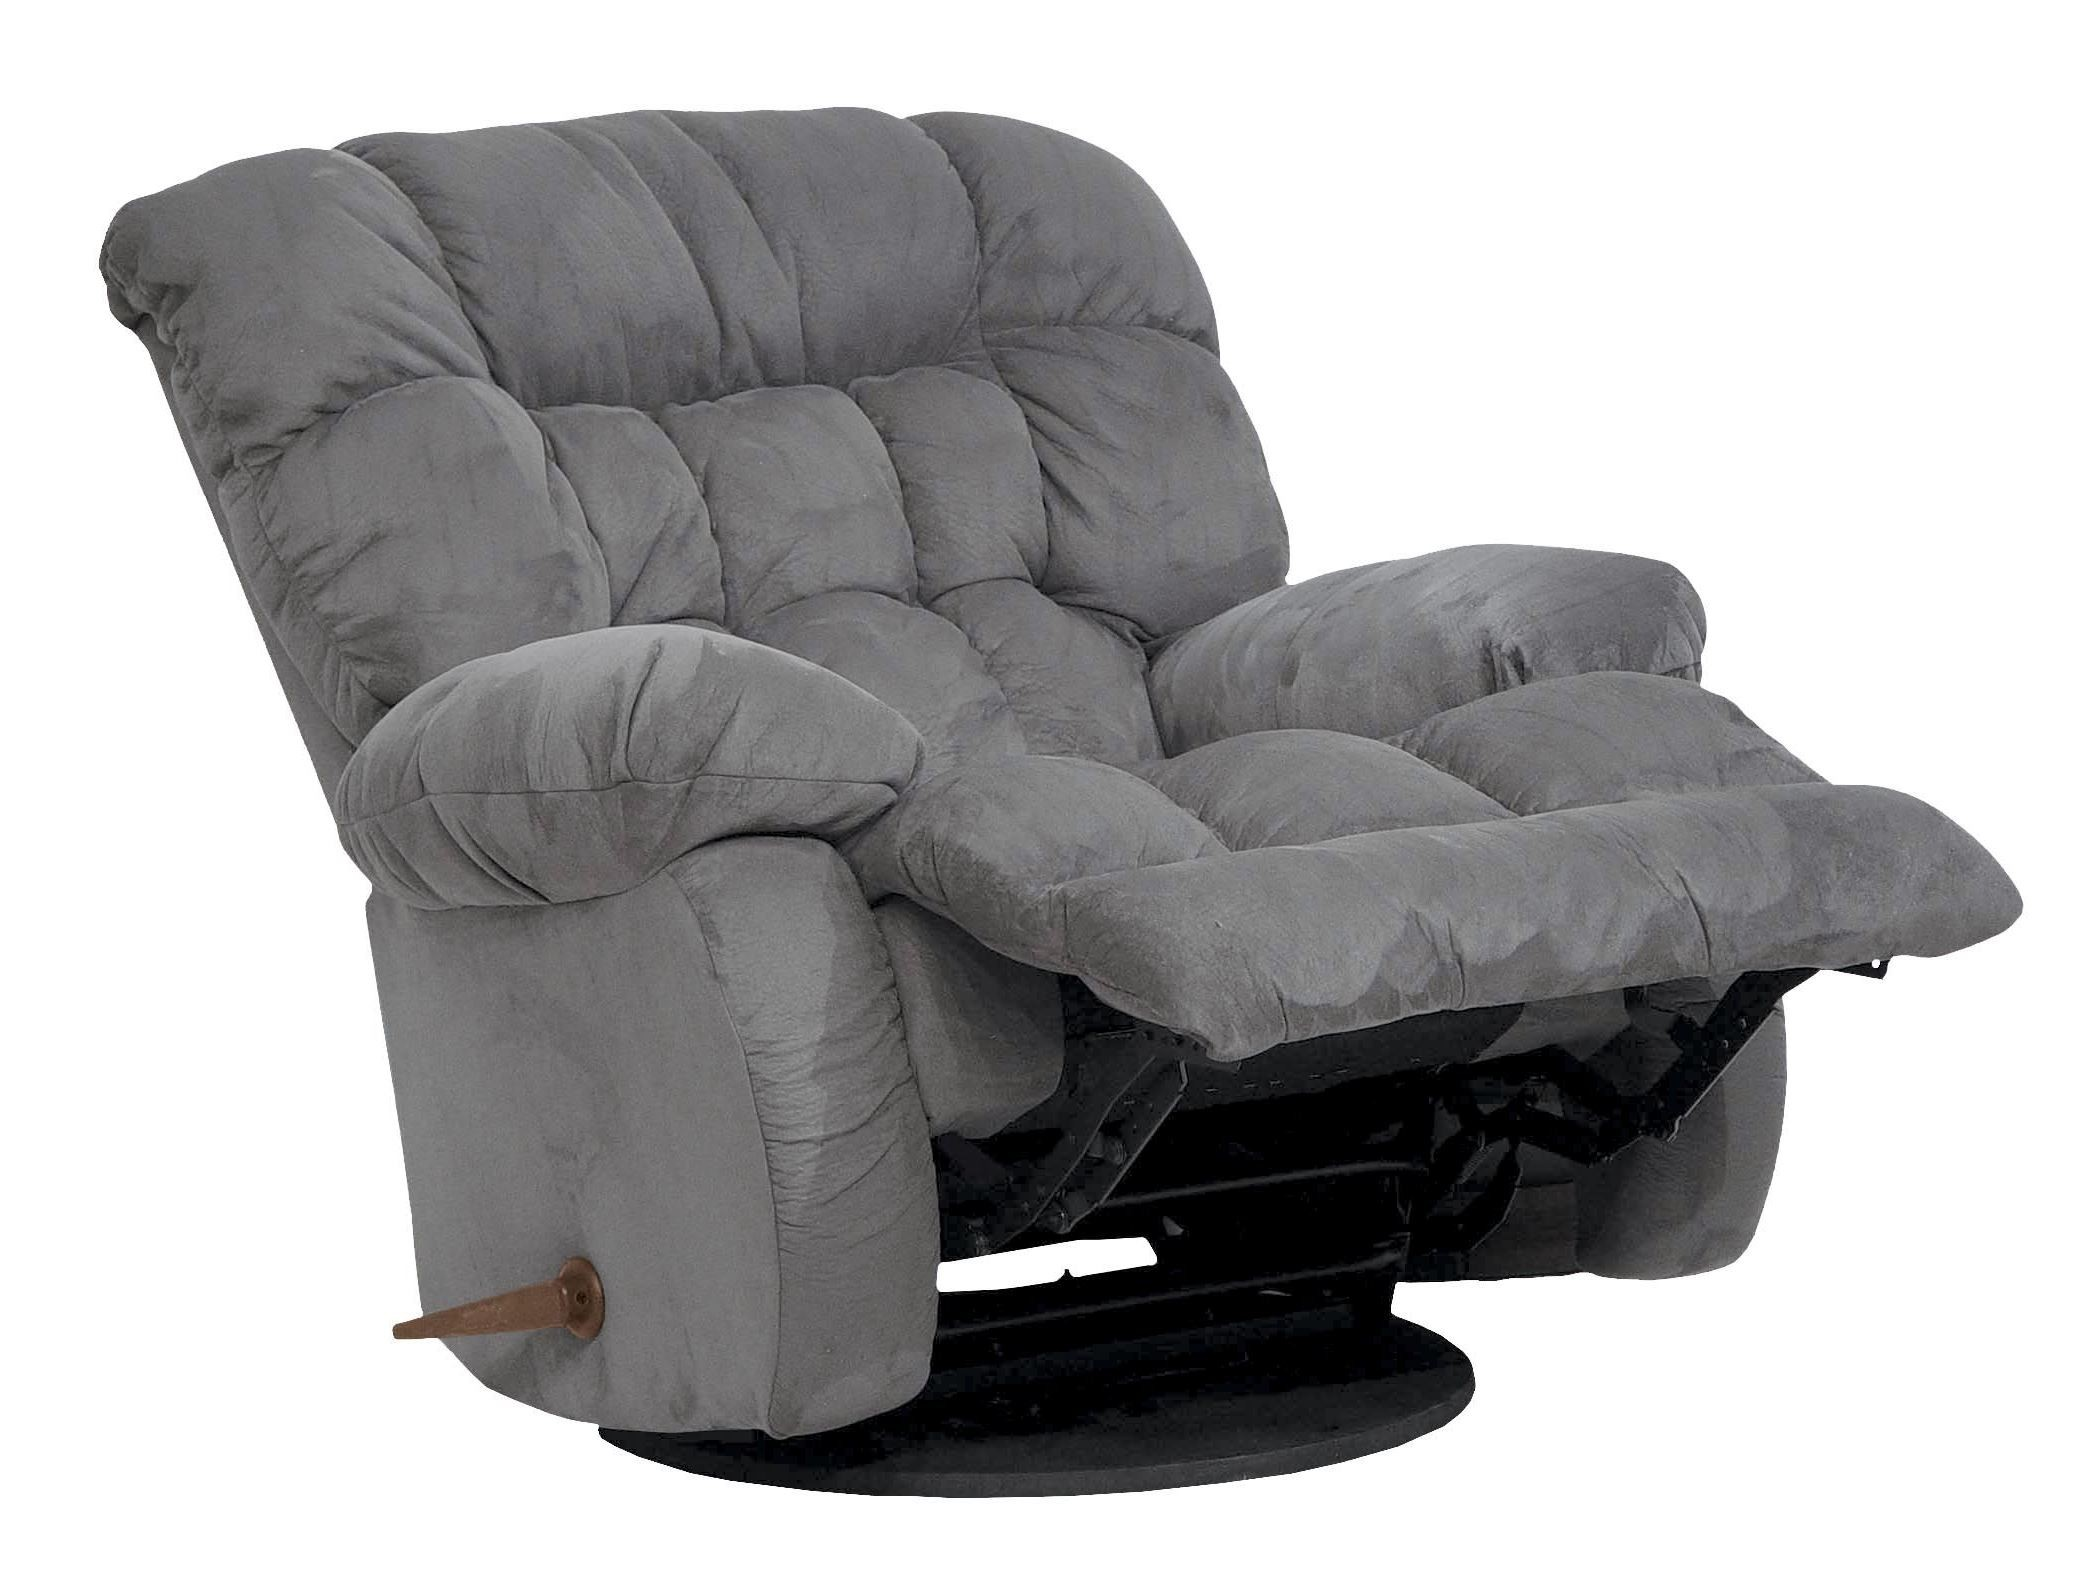 Teddy bear graphite inch away recliner from catnapper for Catnapper cloud nine chaise recliner